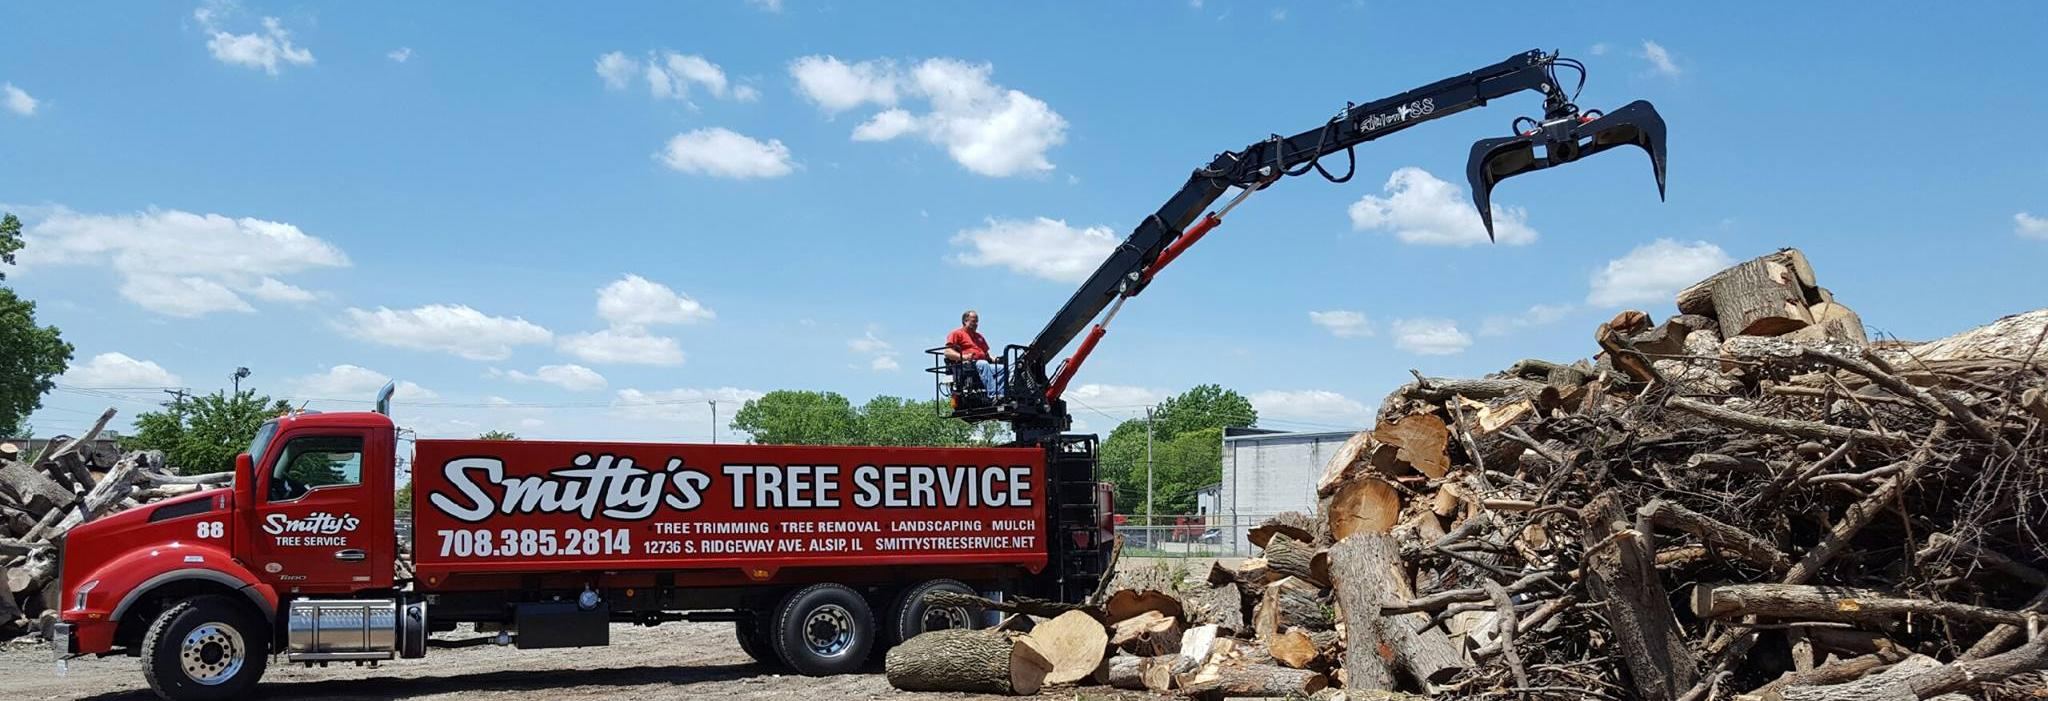 Smitty's Tree Service Inc. serving Chicagoland